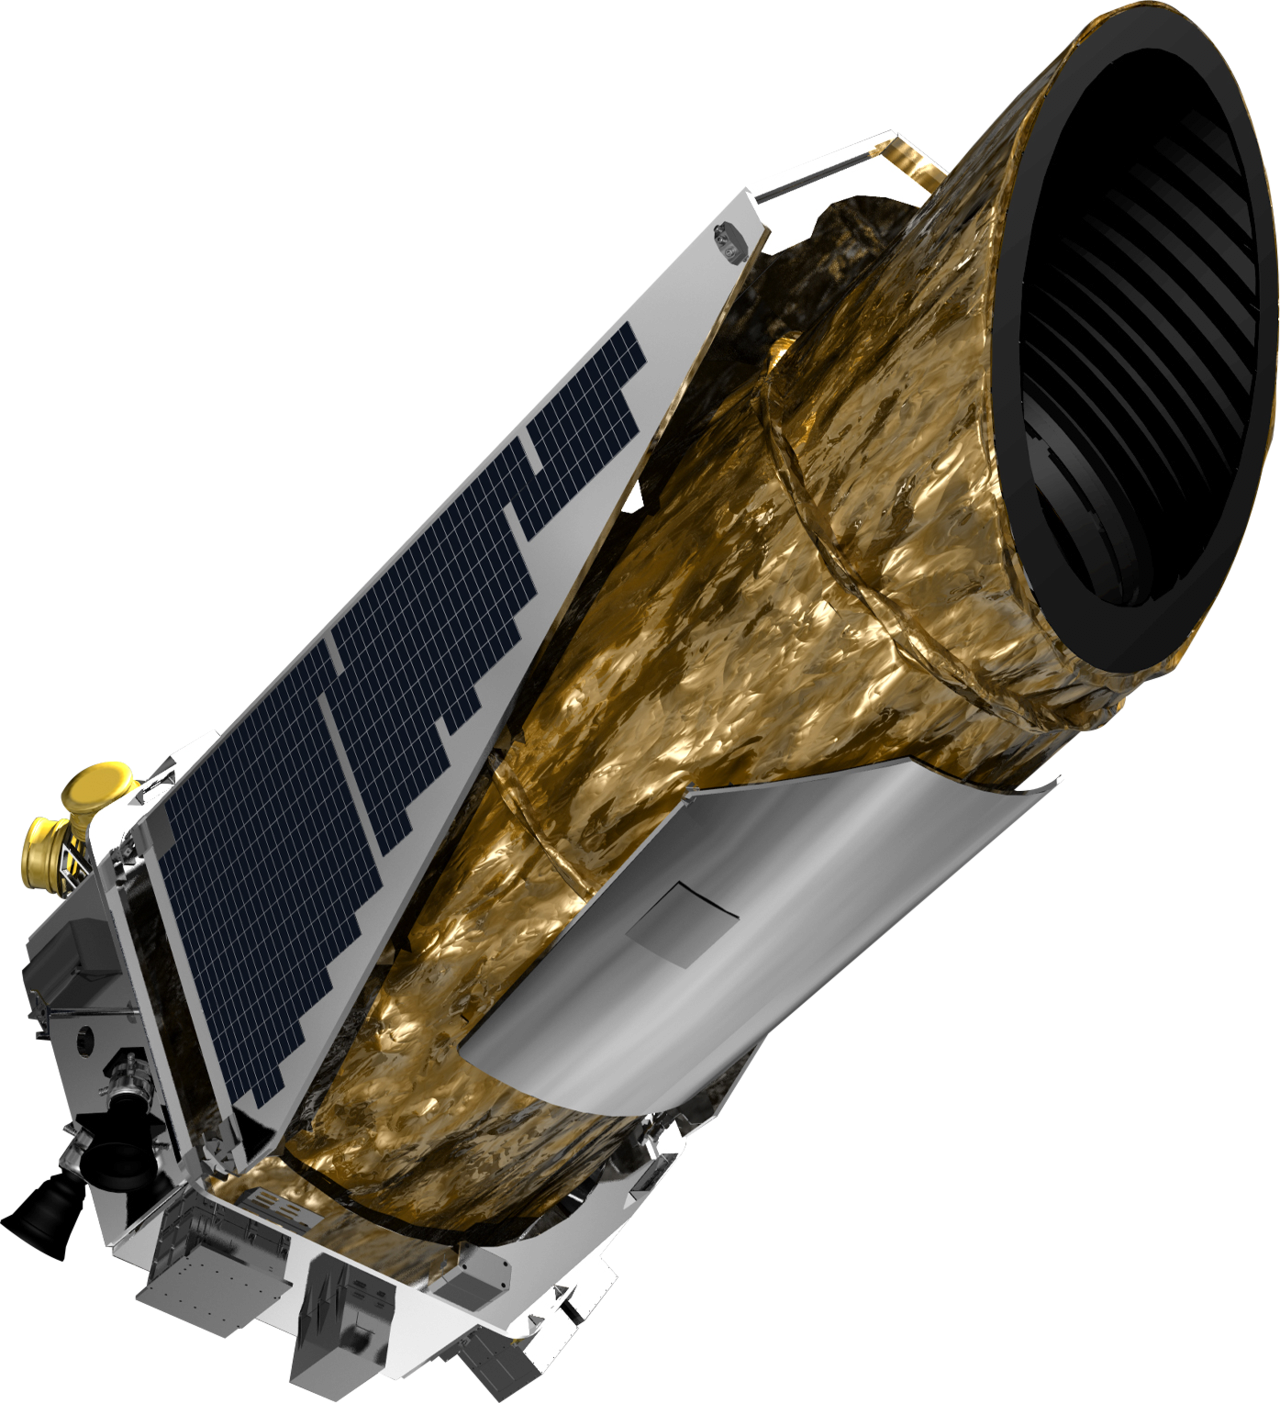 1280px-Kepler_Space_Telescope_spacecraft_model_2.png 인류 우주탐사의 역사(1974~현재)